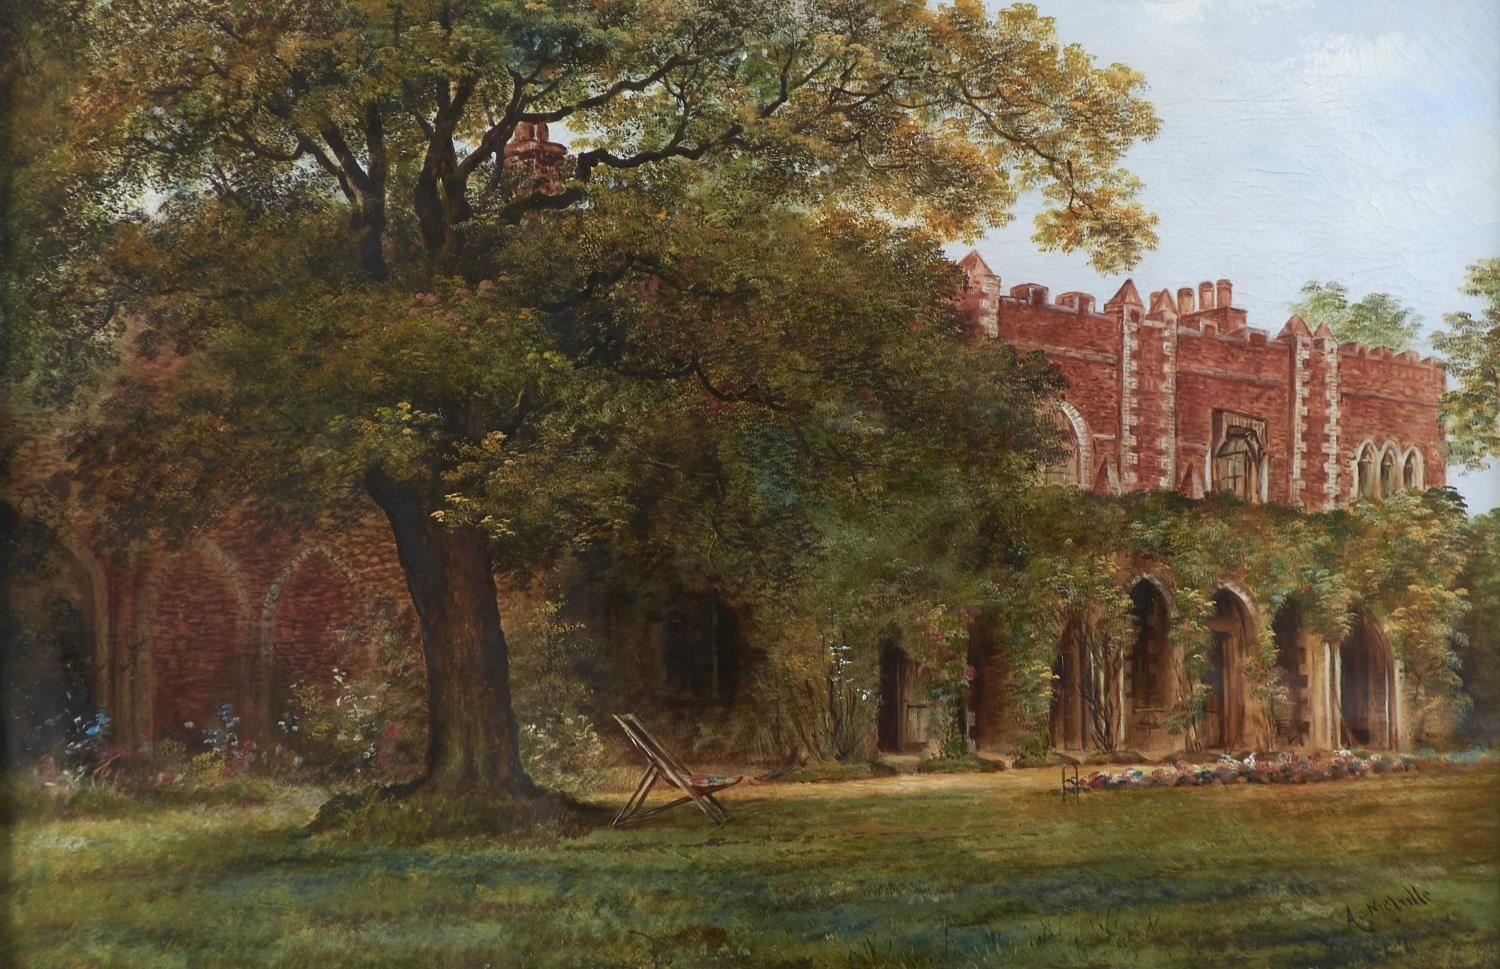 A. MELVILLE, EARLY 20TH C - THE GARDEN OF A FORTIFIED HOUSE WITH DECK CHAIR BENEATH A TREE,